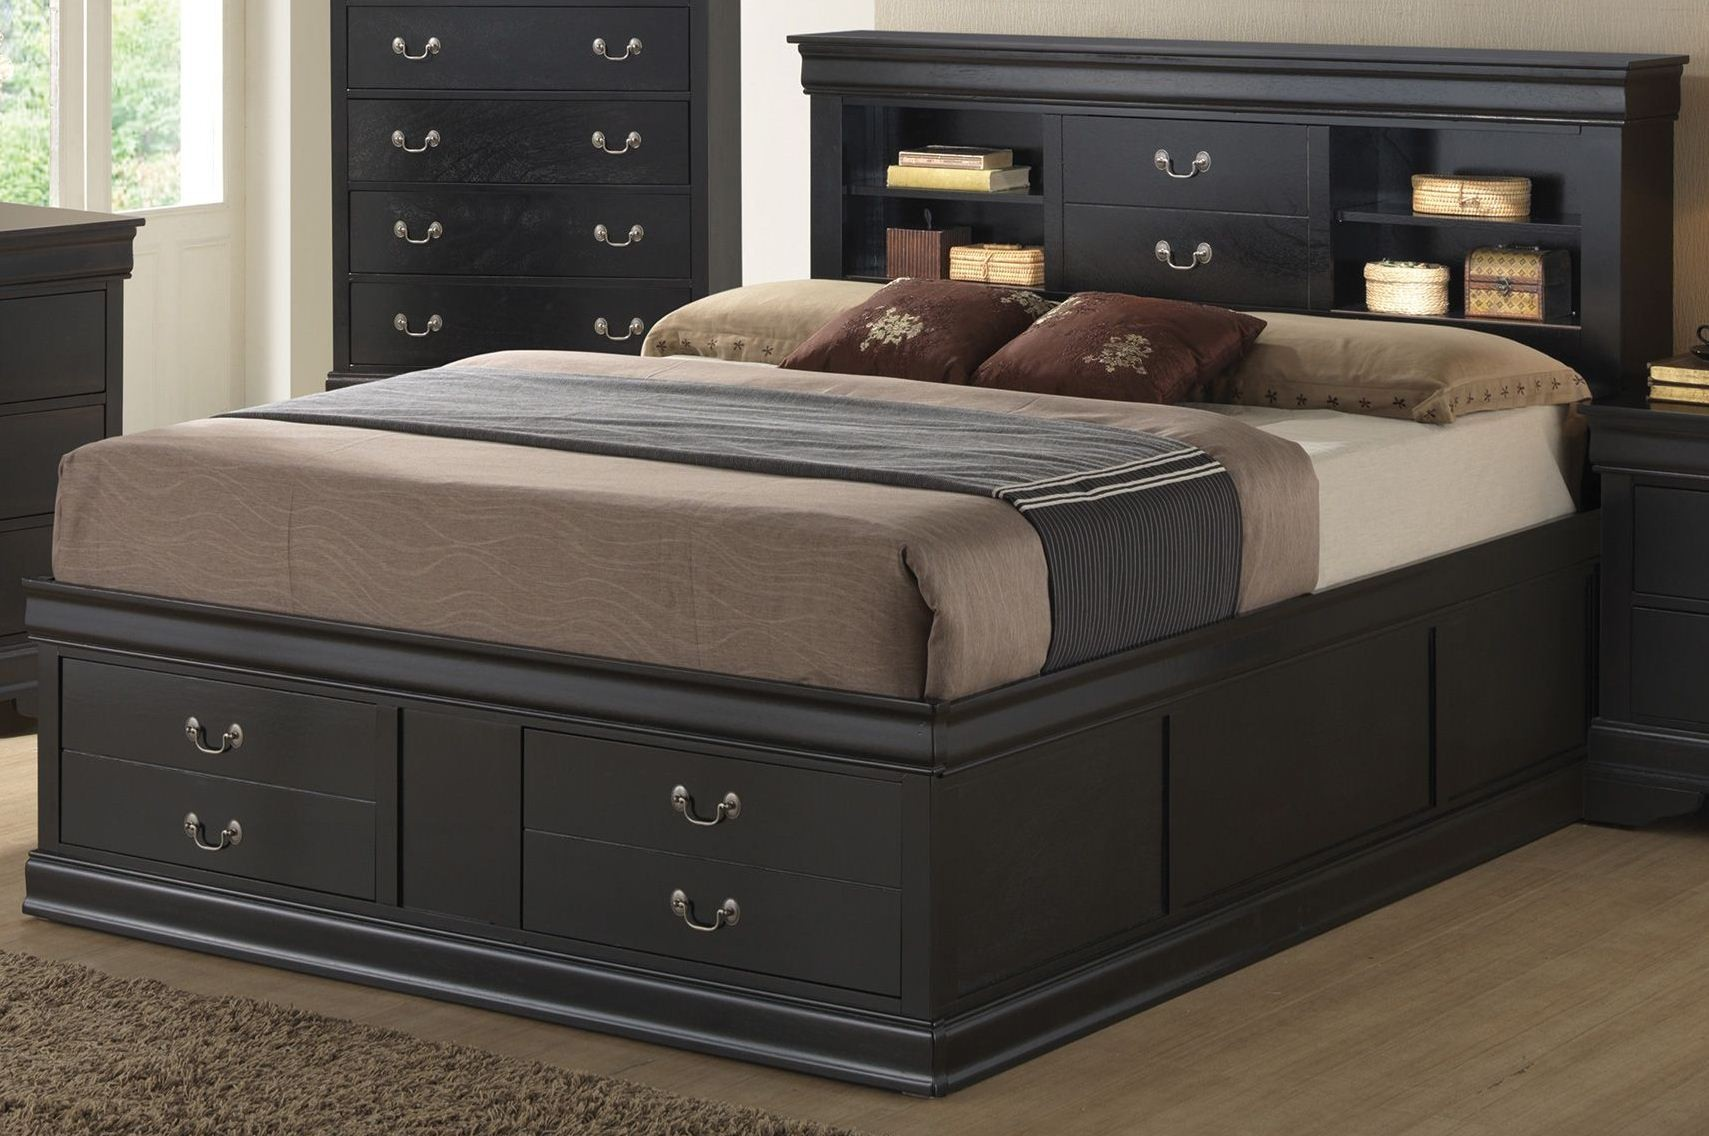 Louis Philippe Black Storage Bedroom Set From Coaster 201079q Coleman Furniture